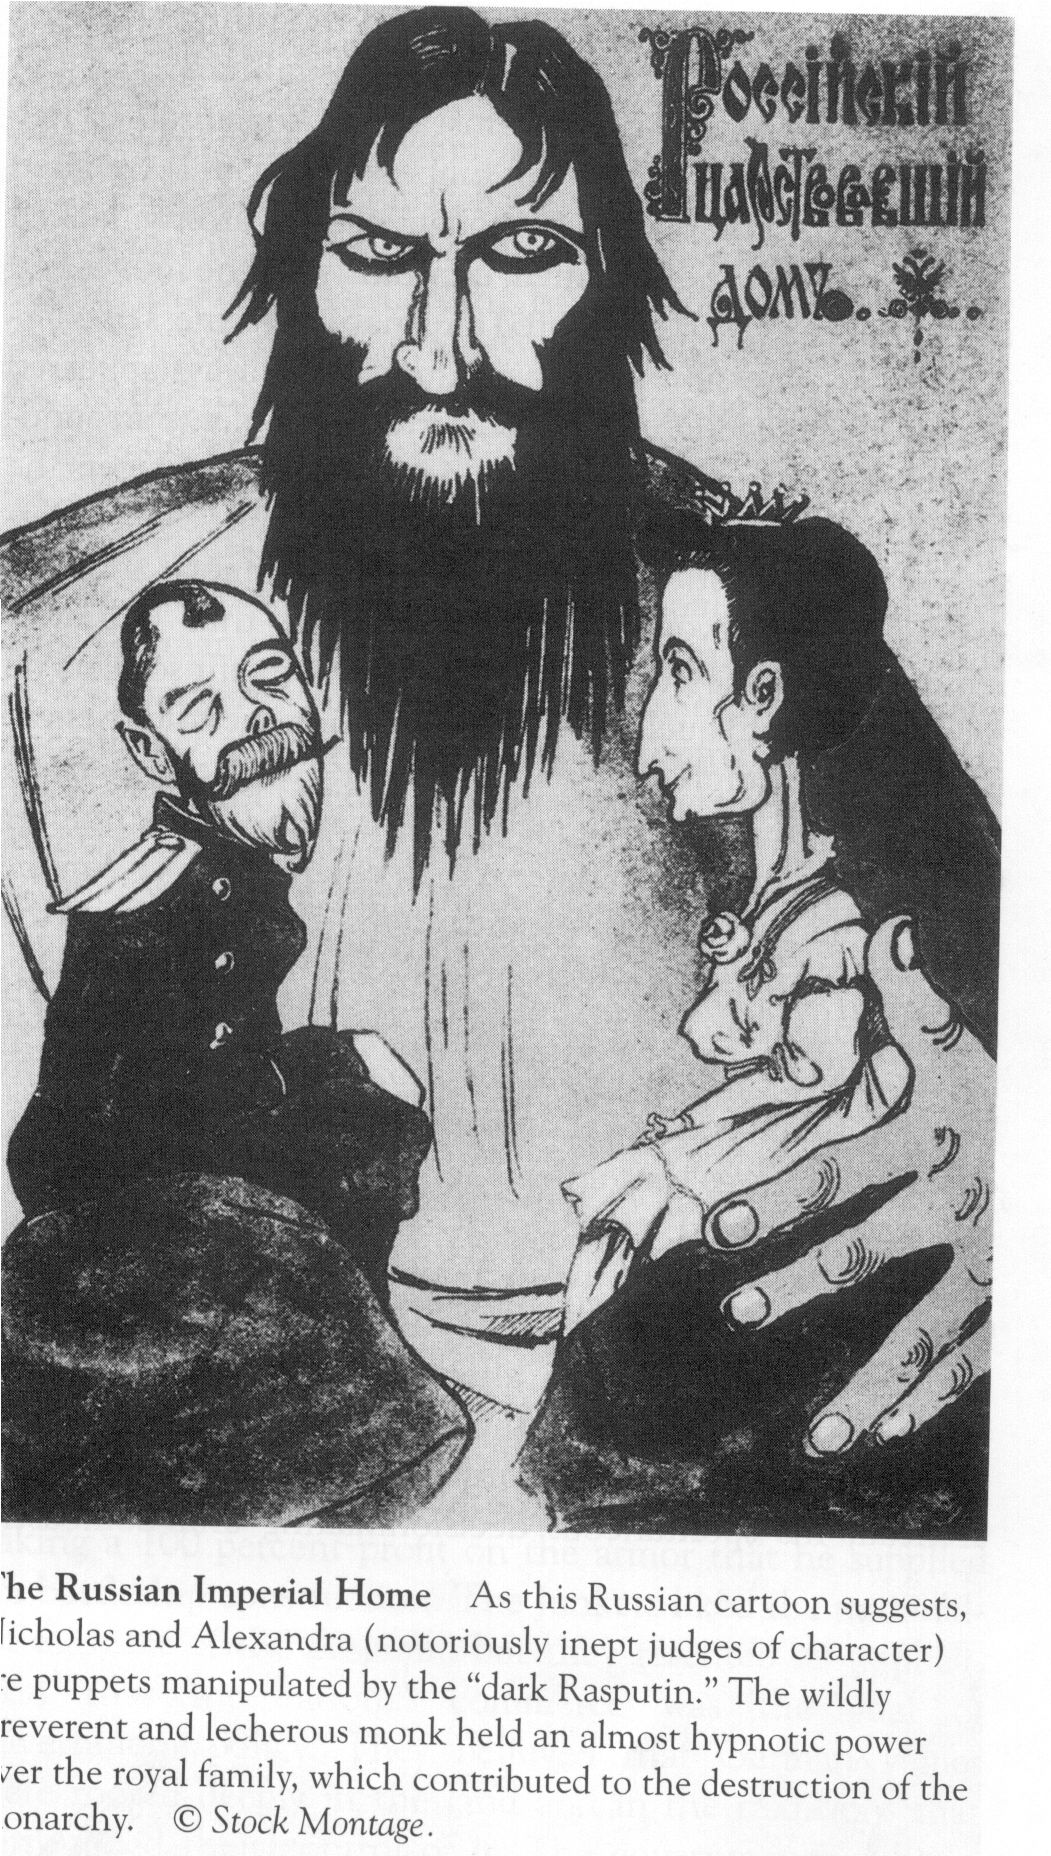 Rasputin With Tsar Nicholas And Alexandra I Really Wish I Knew Who Created This Cartoon The Style Is Incredible Rasputin Russian Revolution Caricature